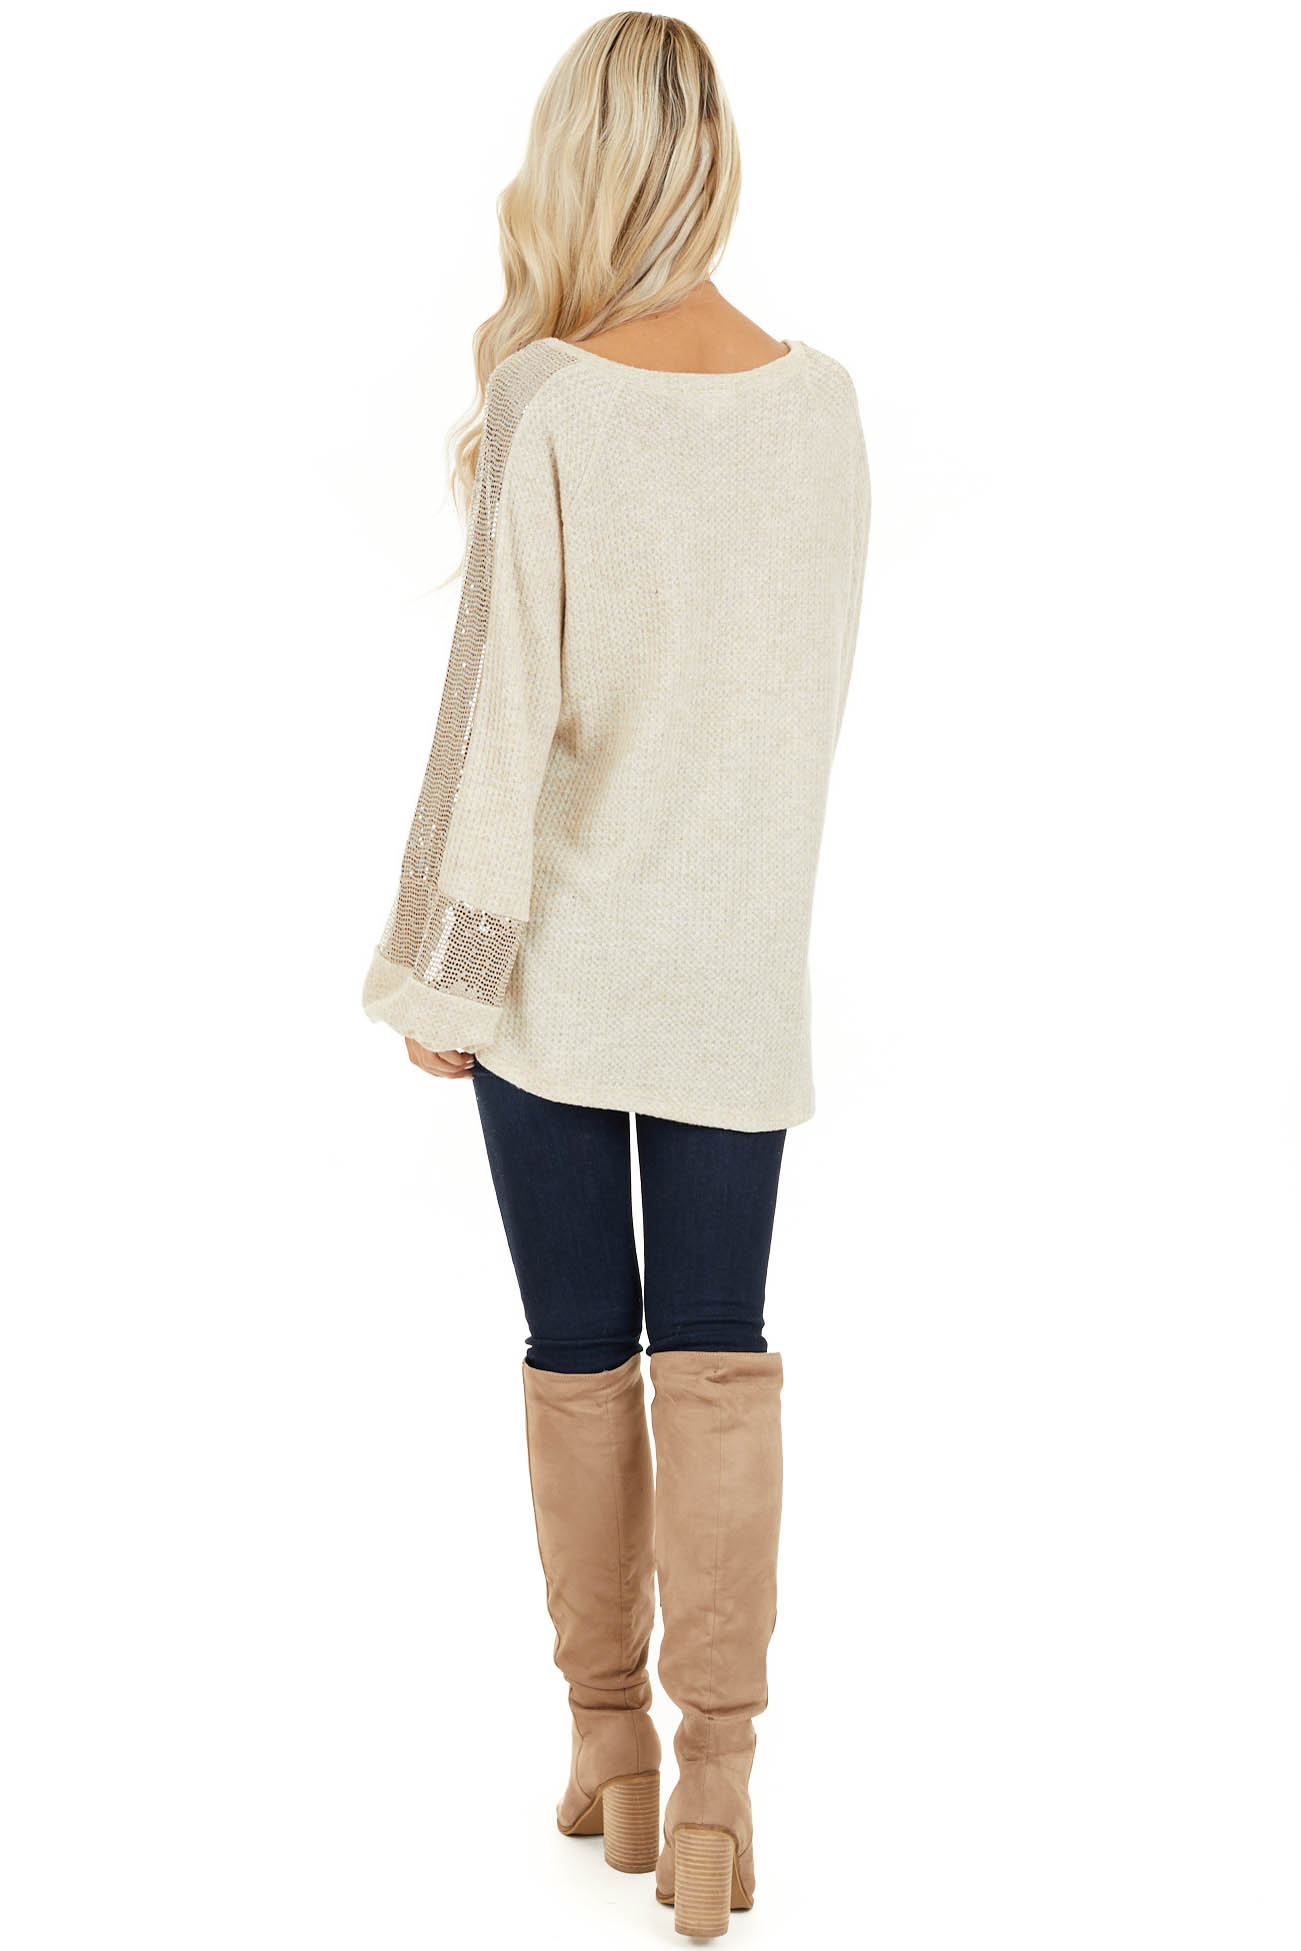 Ivory Waffle Knit Top with Sequined Bubble Sleeves back full body